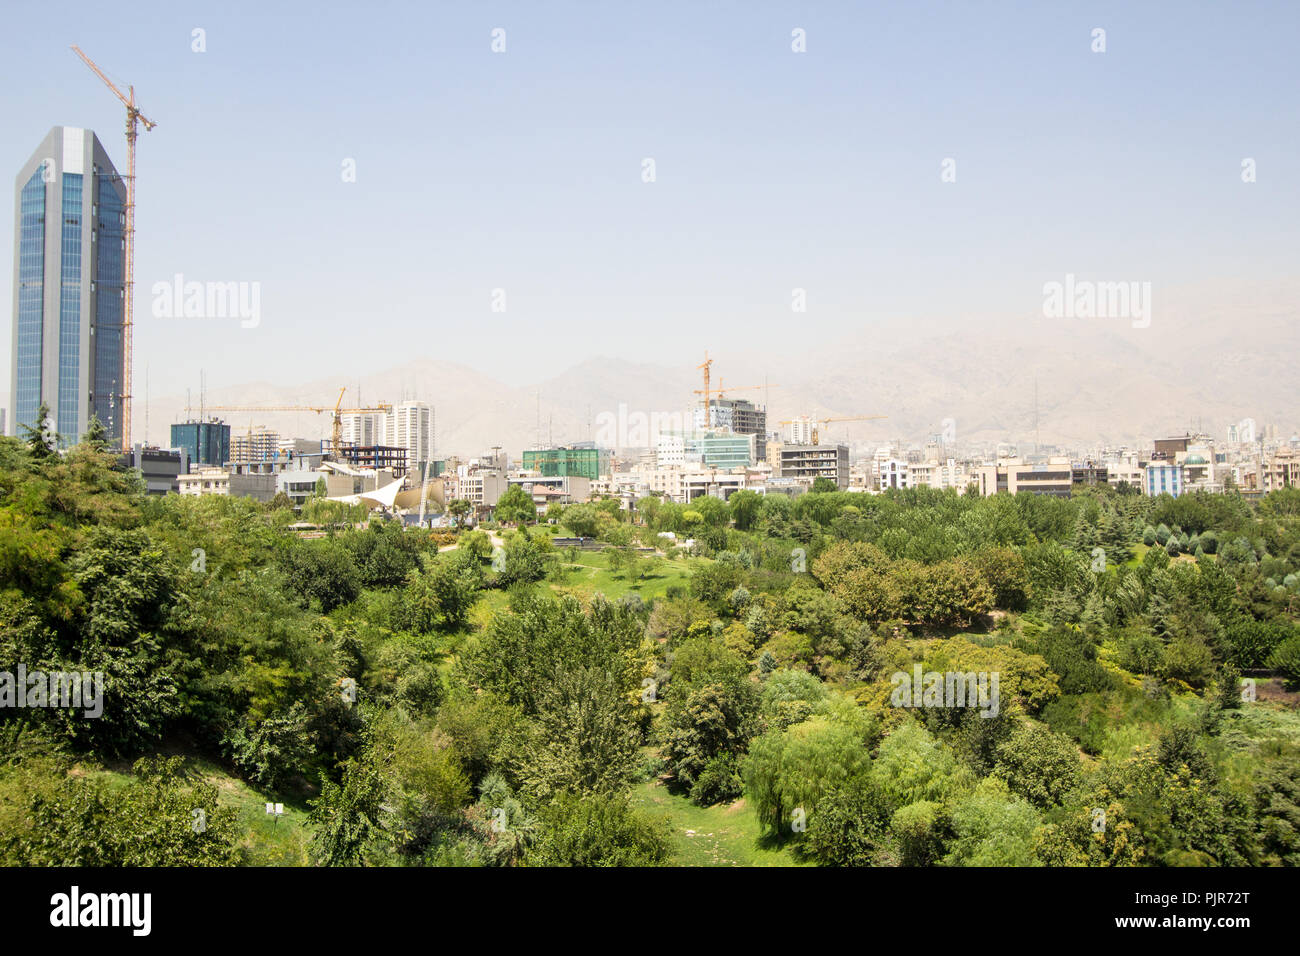 Ariel photo for Tehran city in Islamic Republic of Iran, which show Streets and buildings and some cars and some trees. - Stock Image